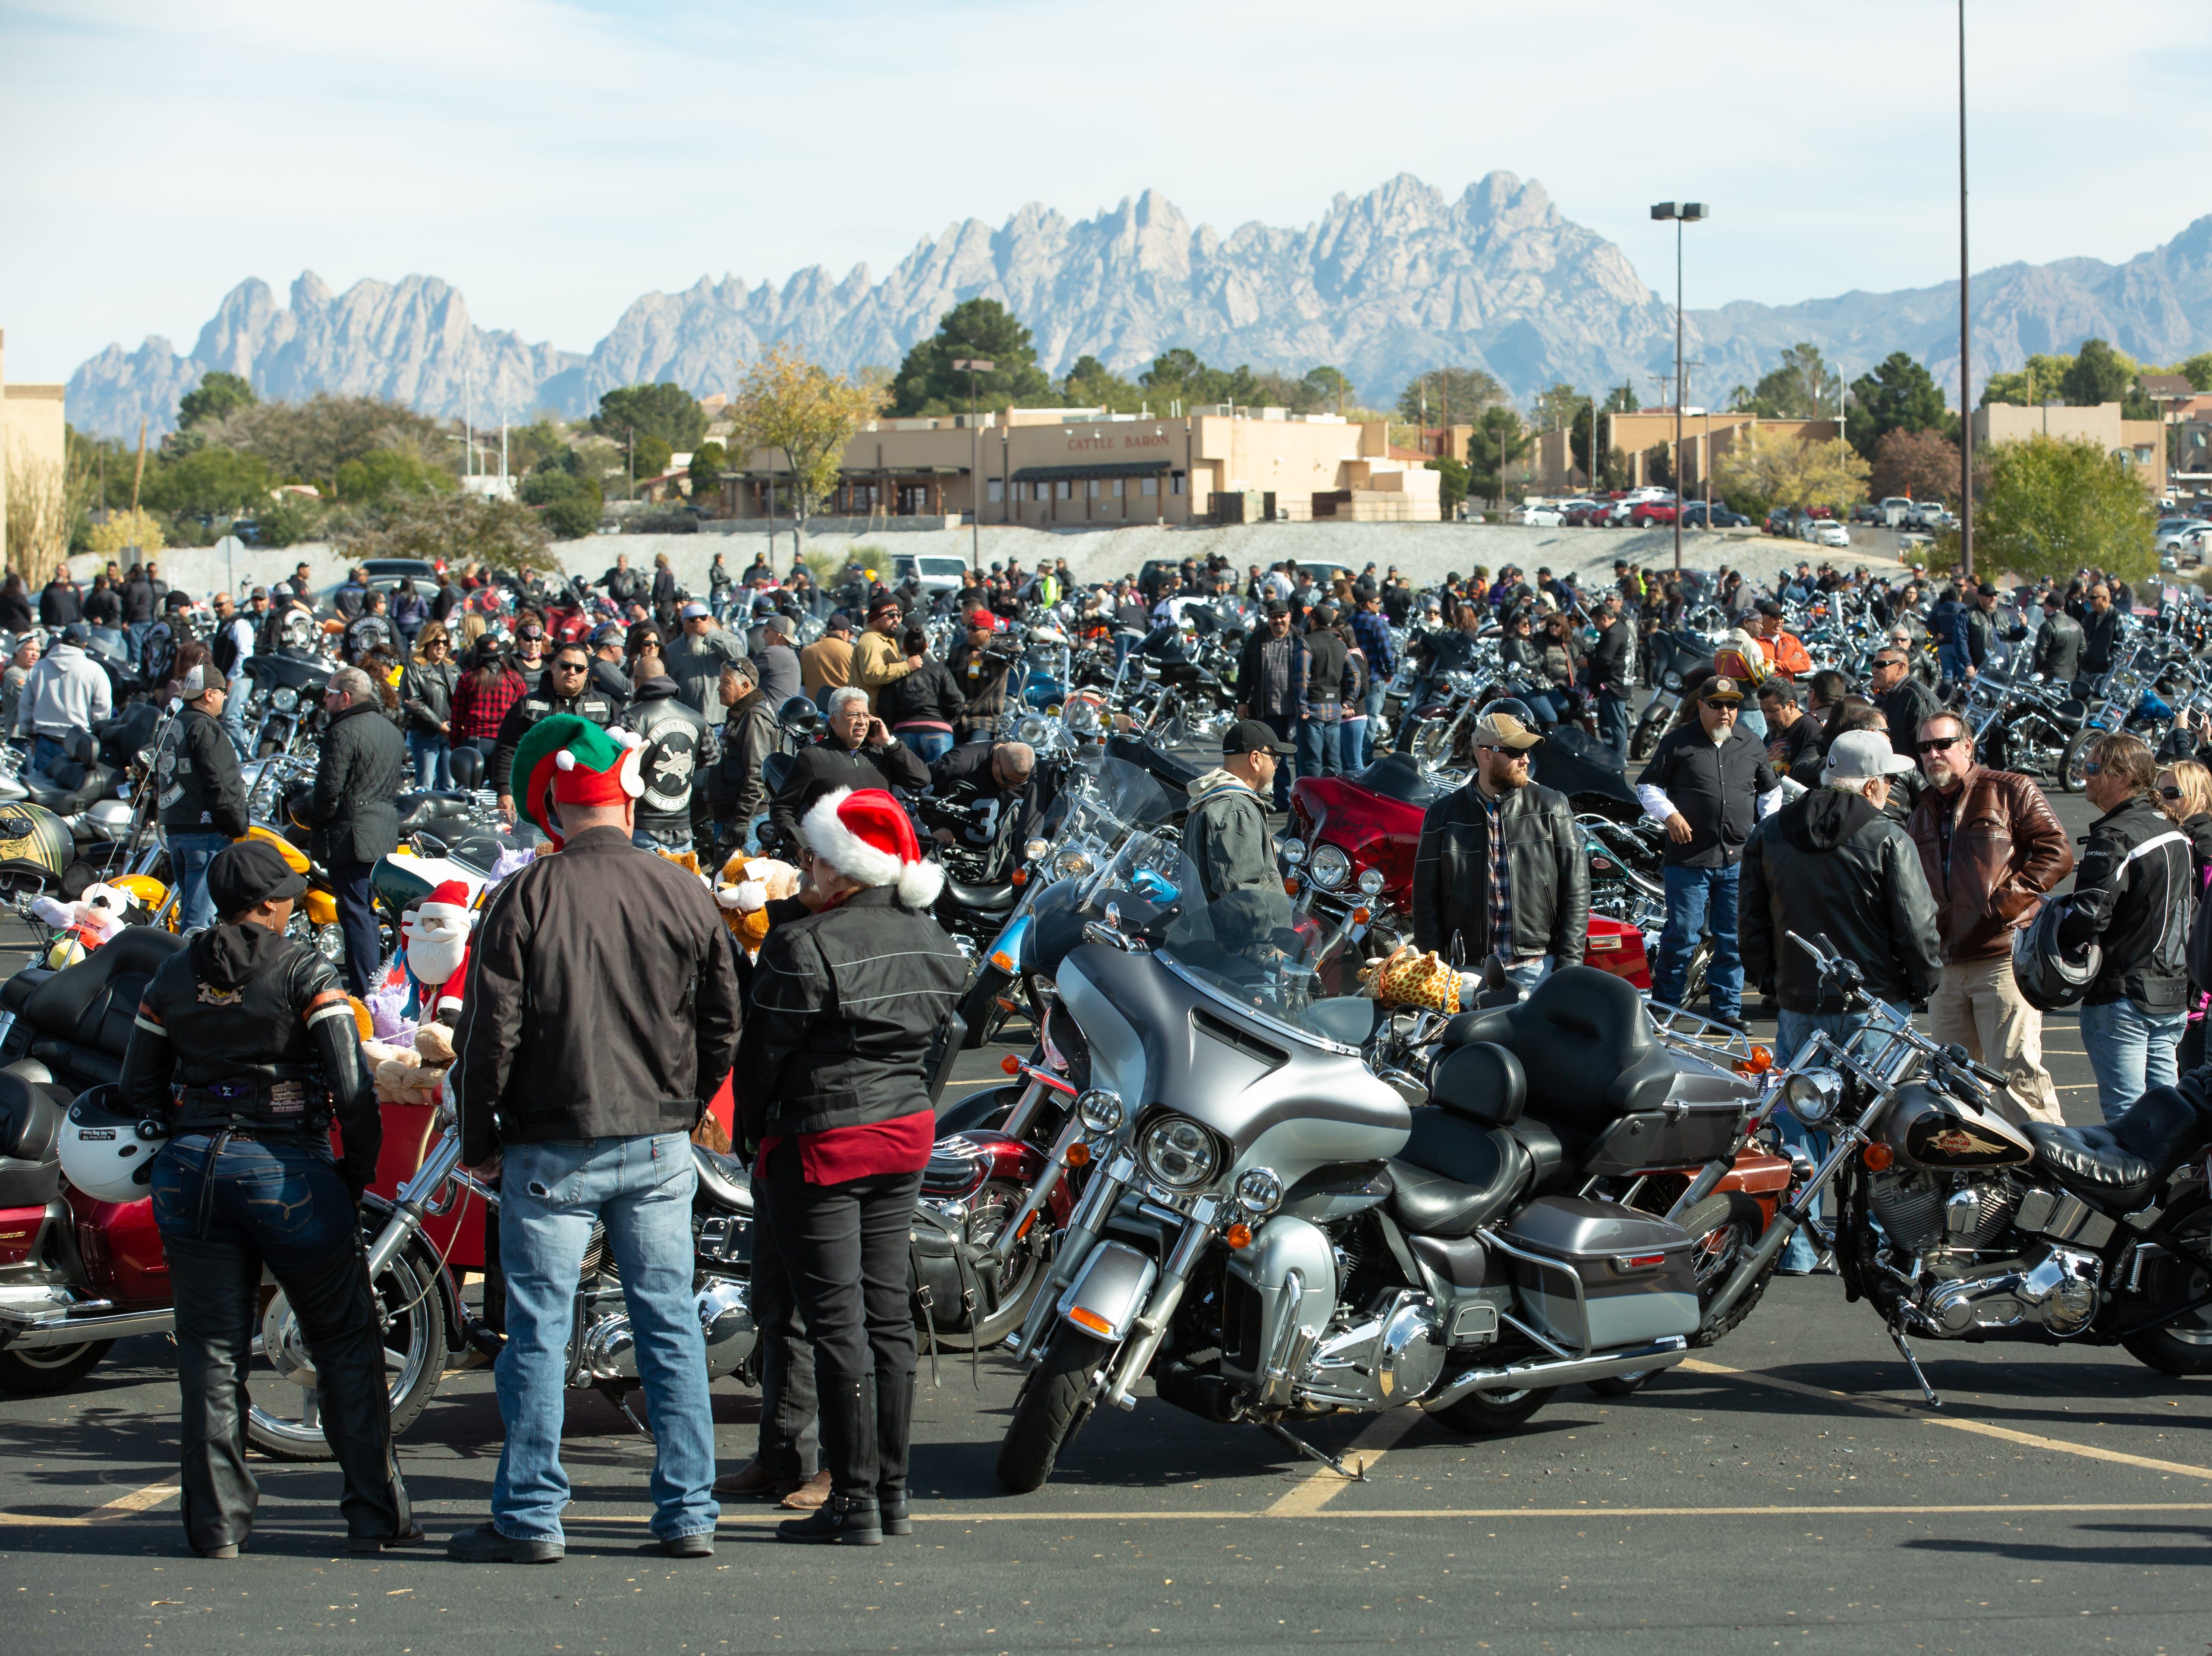 Bikers gather in the Mesilla Valley Mall parking lot on Sunday Nov. 18, 2018, during the 38th annual Toys for Kids Motorcycle Parade to benefit children in southern New Mexico.